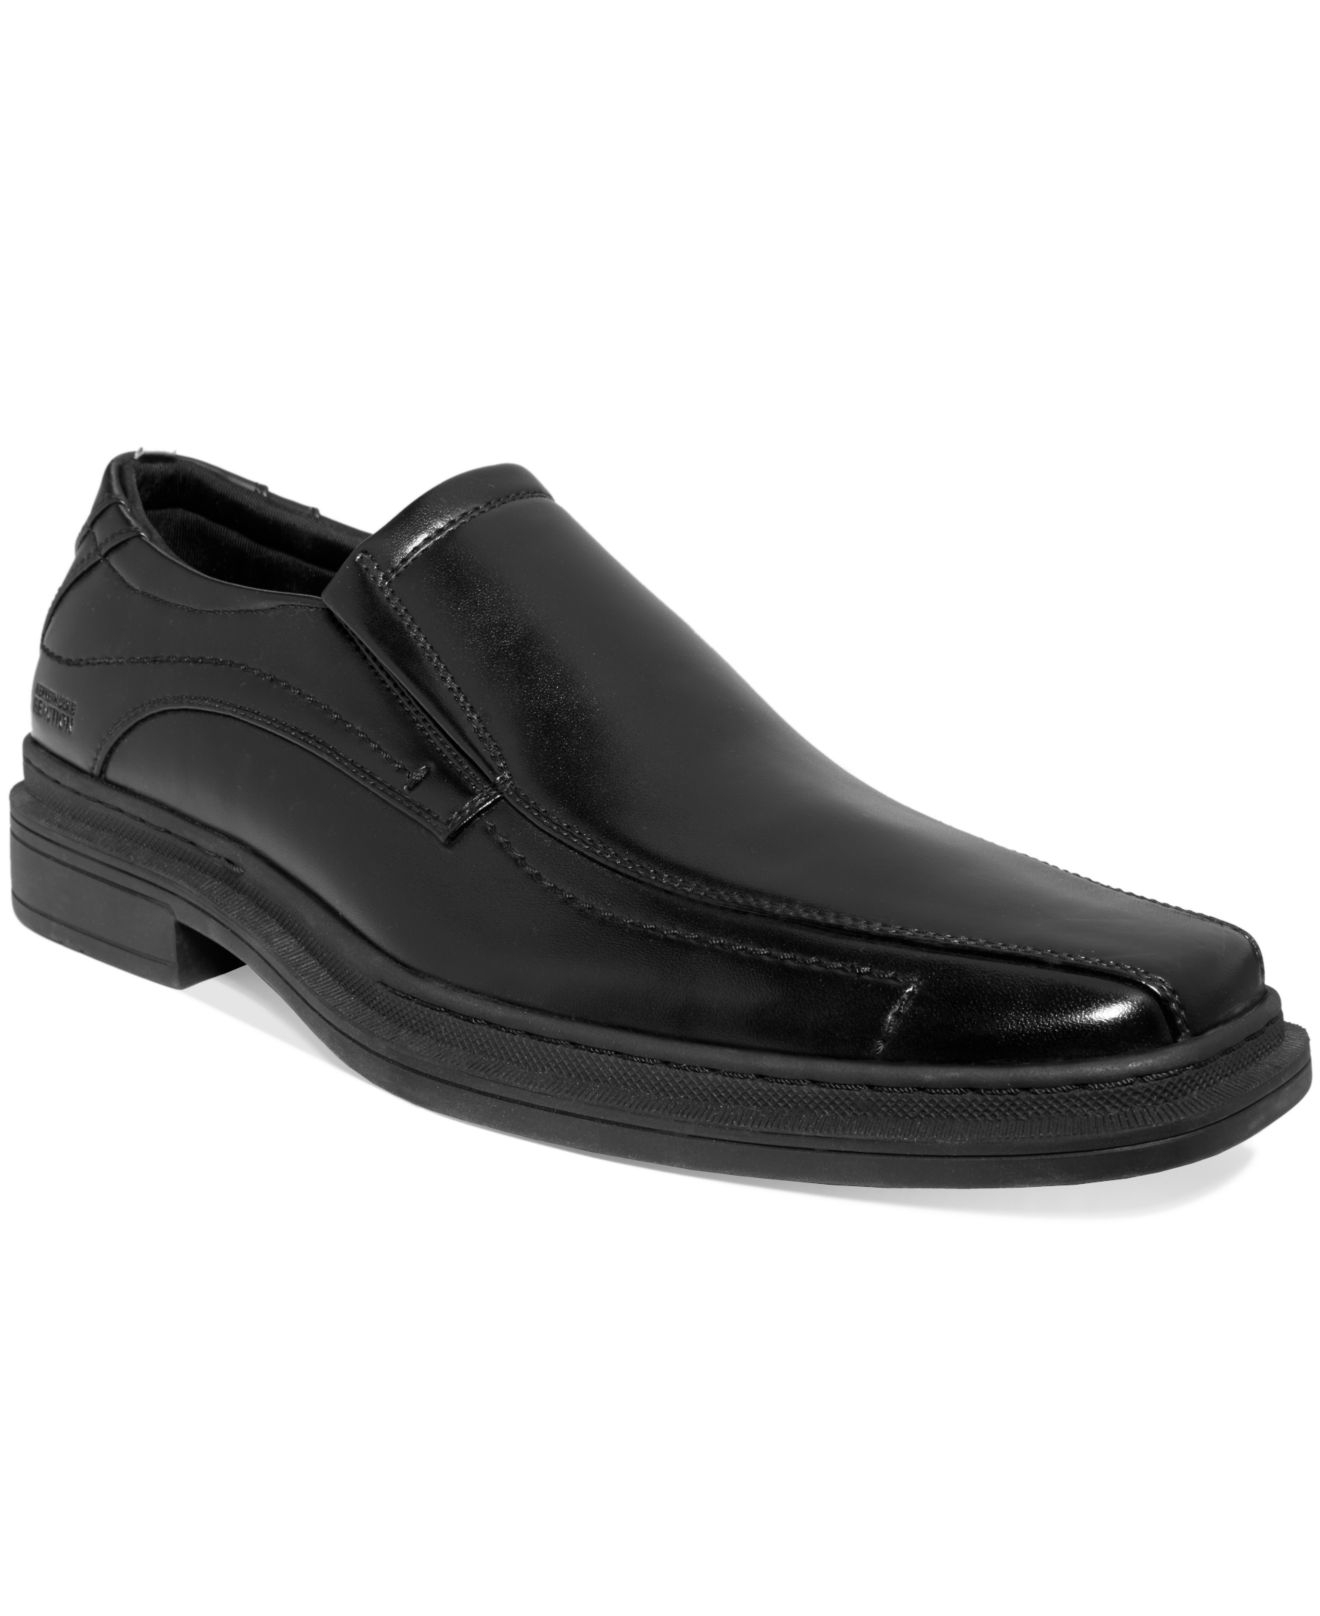 kenneth cole reaction base jump slip on shoes in black for